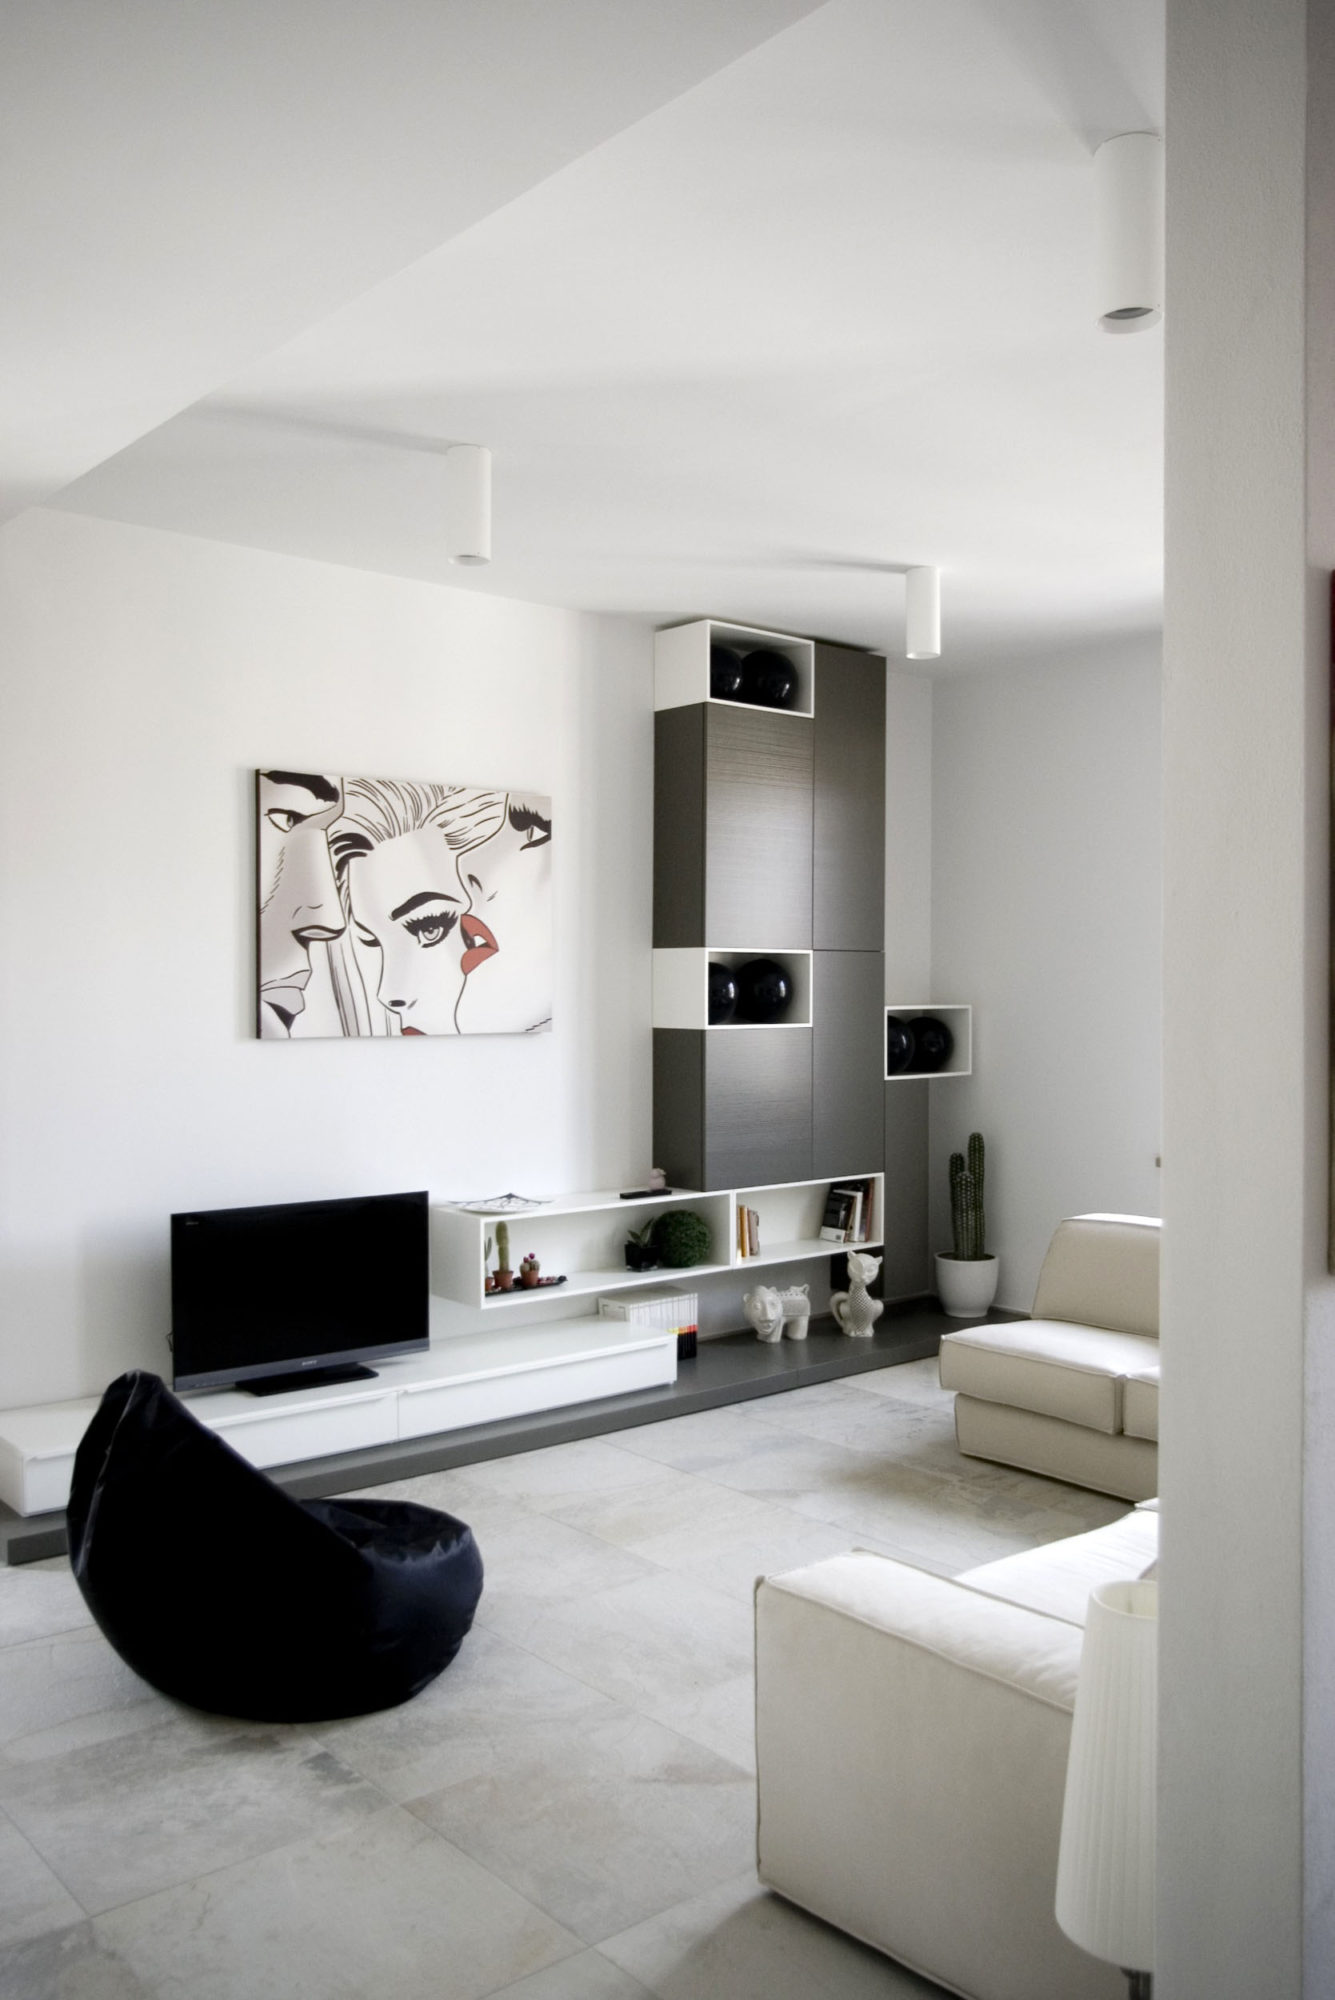 Minimalist interior by msx2 architettura for Minimalist condominium interior design